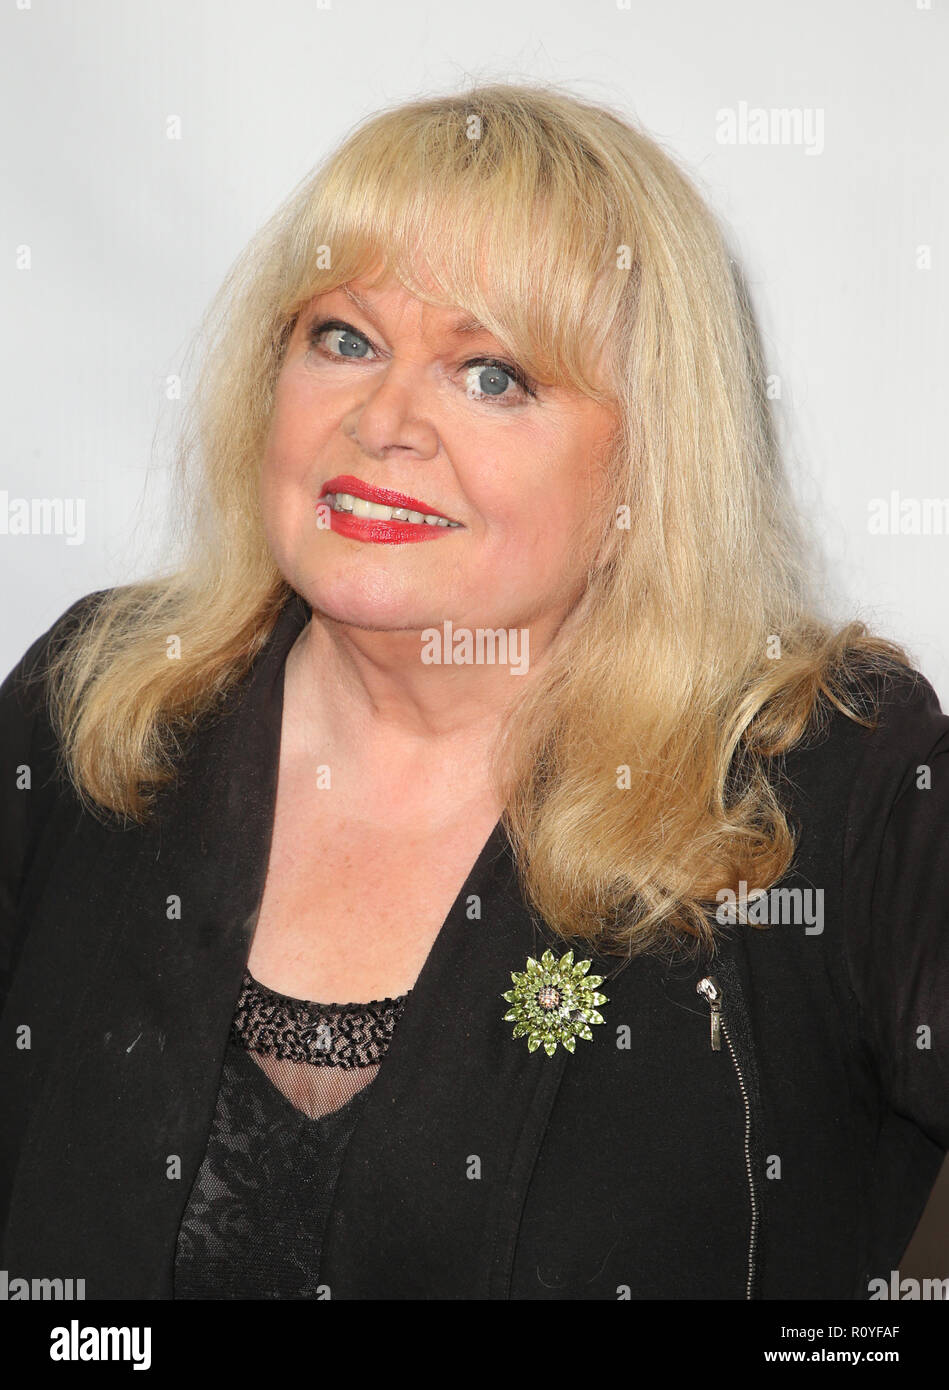 Sally Struthers Breaks Leg, Will Miss Rest of 'Annie' in Maine